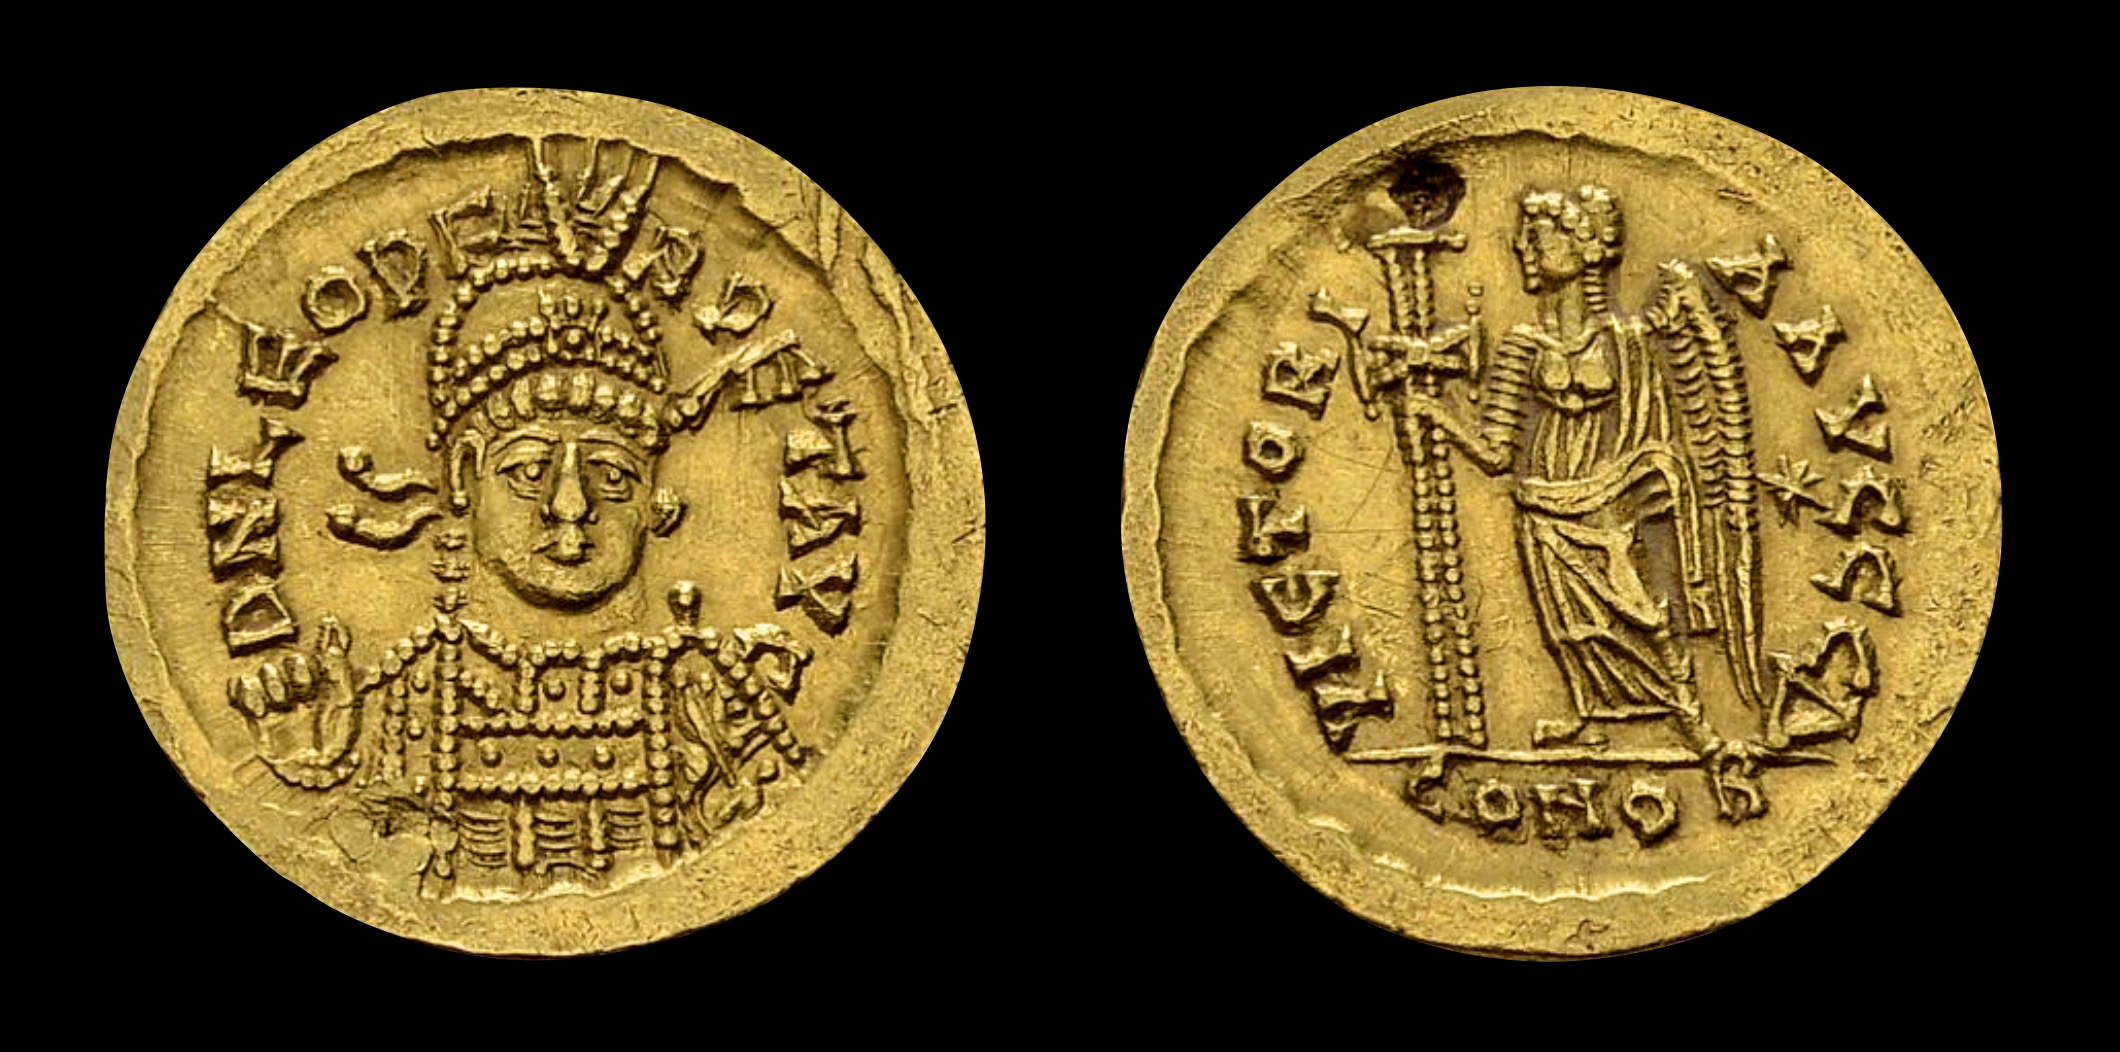 Leo I (457-474) AV Solidus (20 mm, 4.46 g), Constantinople, c. 462-466 AD. Obv: D N LEO PERPET AVC, helmeted and cuirassed bust facing slightly right, holding spear and shield. Rev: VICTORIA AVCCC Δ, Victory standing left, holding long cross; to right, star; CONOB in exergue. RIC 605.